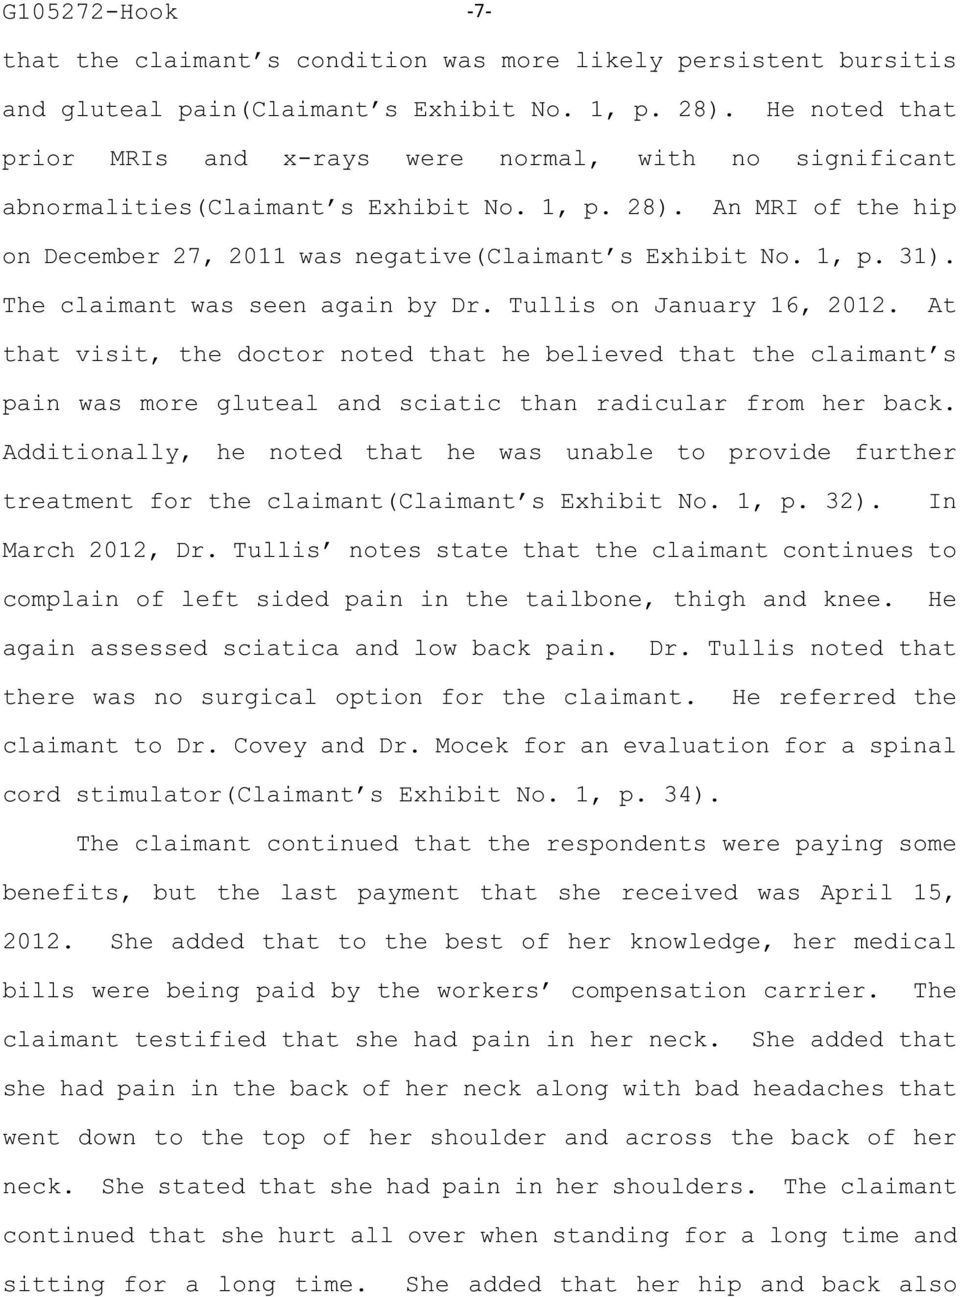 The claimant was seen again by Dr. Tullis on January 16, 2012. At that visit, the doctor noted that he believed that the claimant s pain was more gluteal and sciatic than radicular from her back.